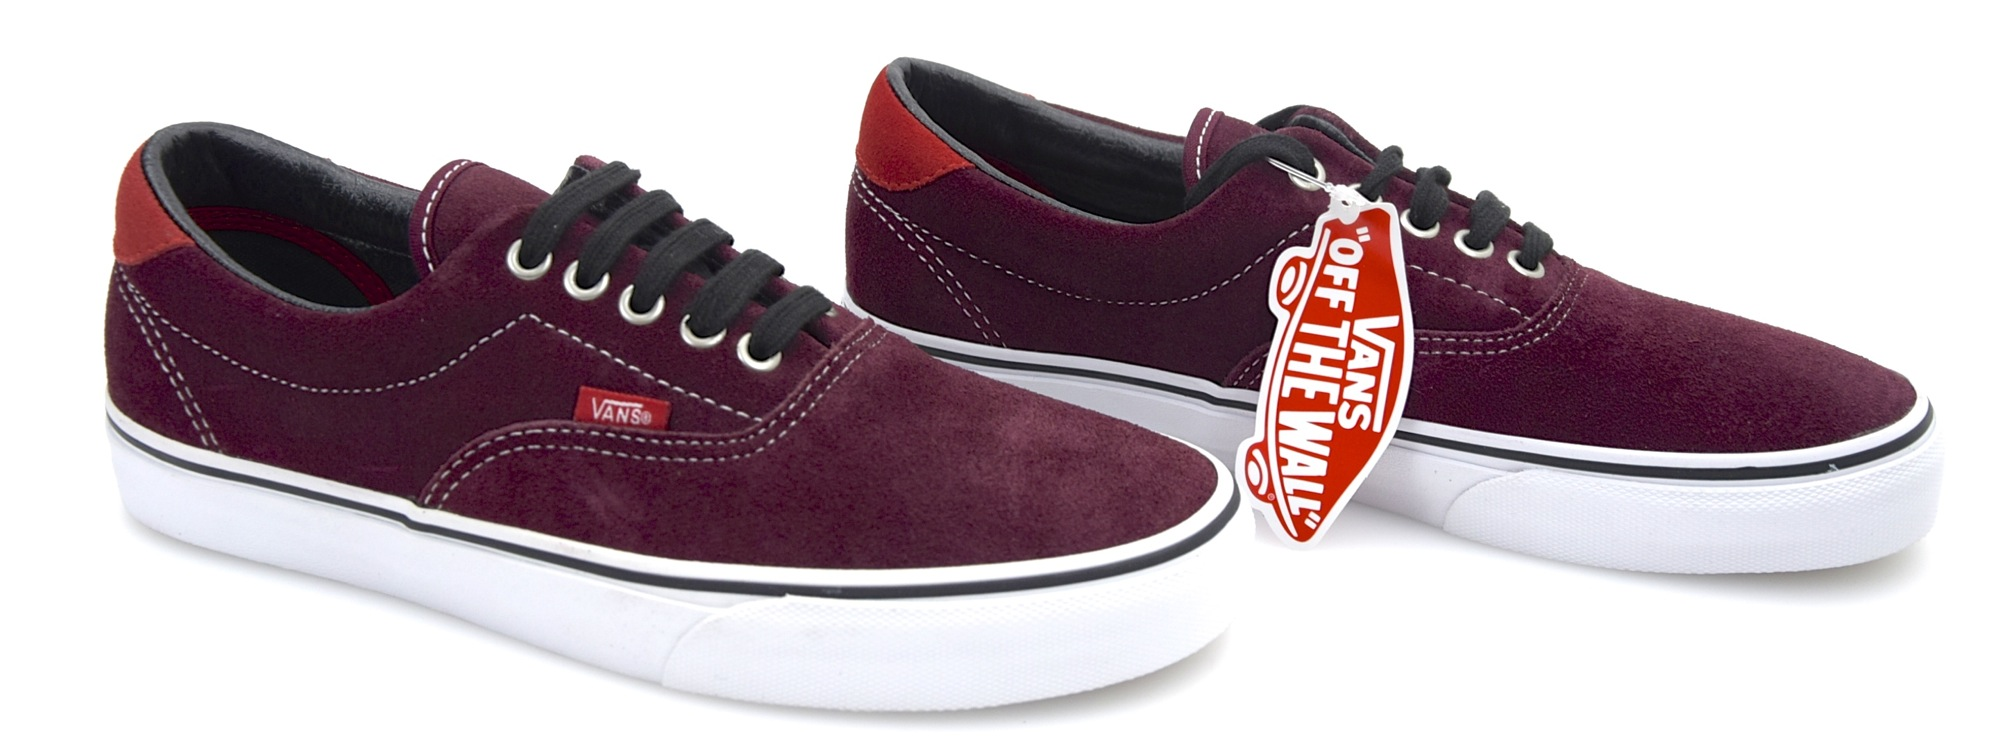 vans era bordeaux